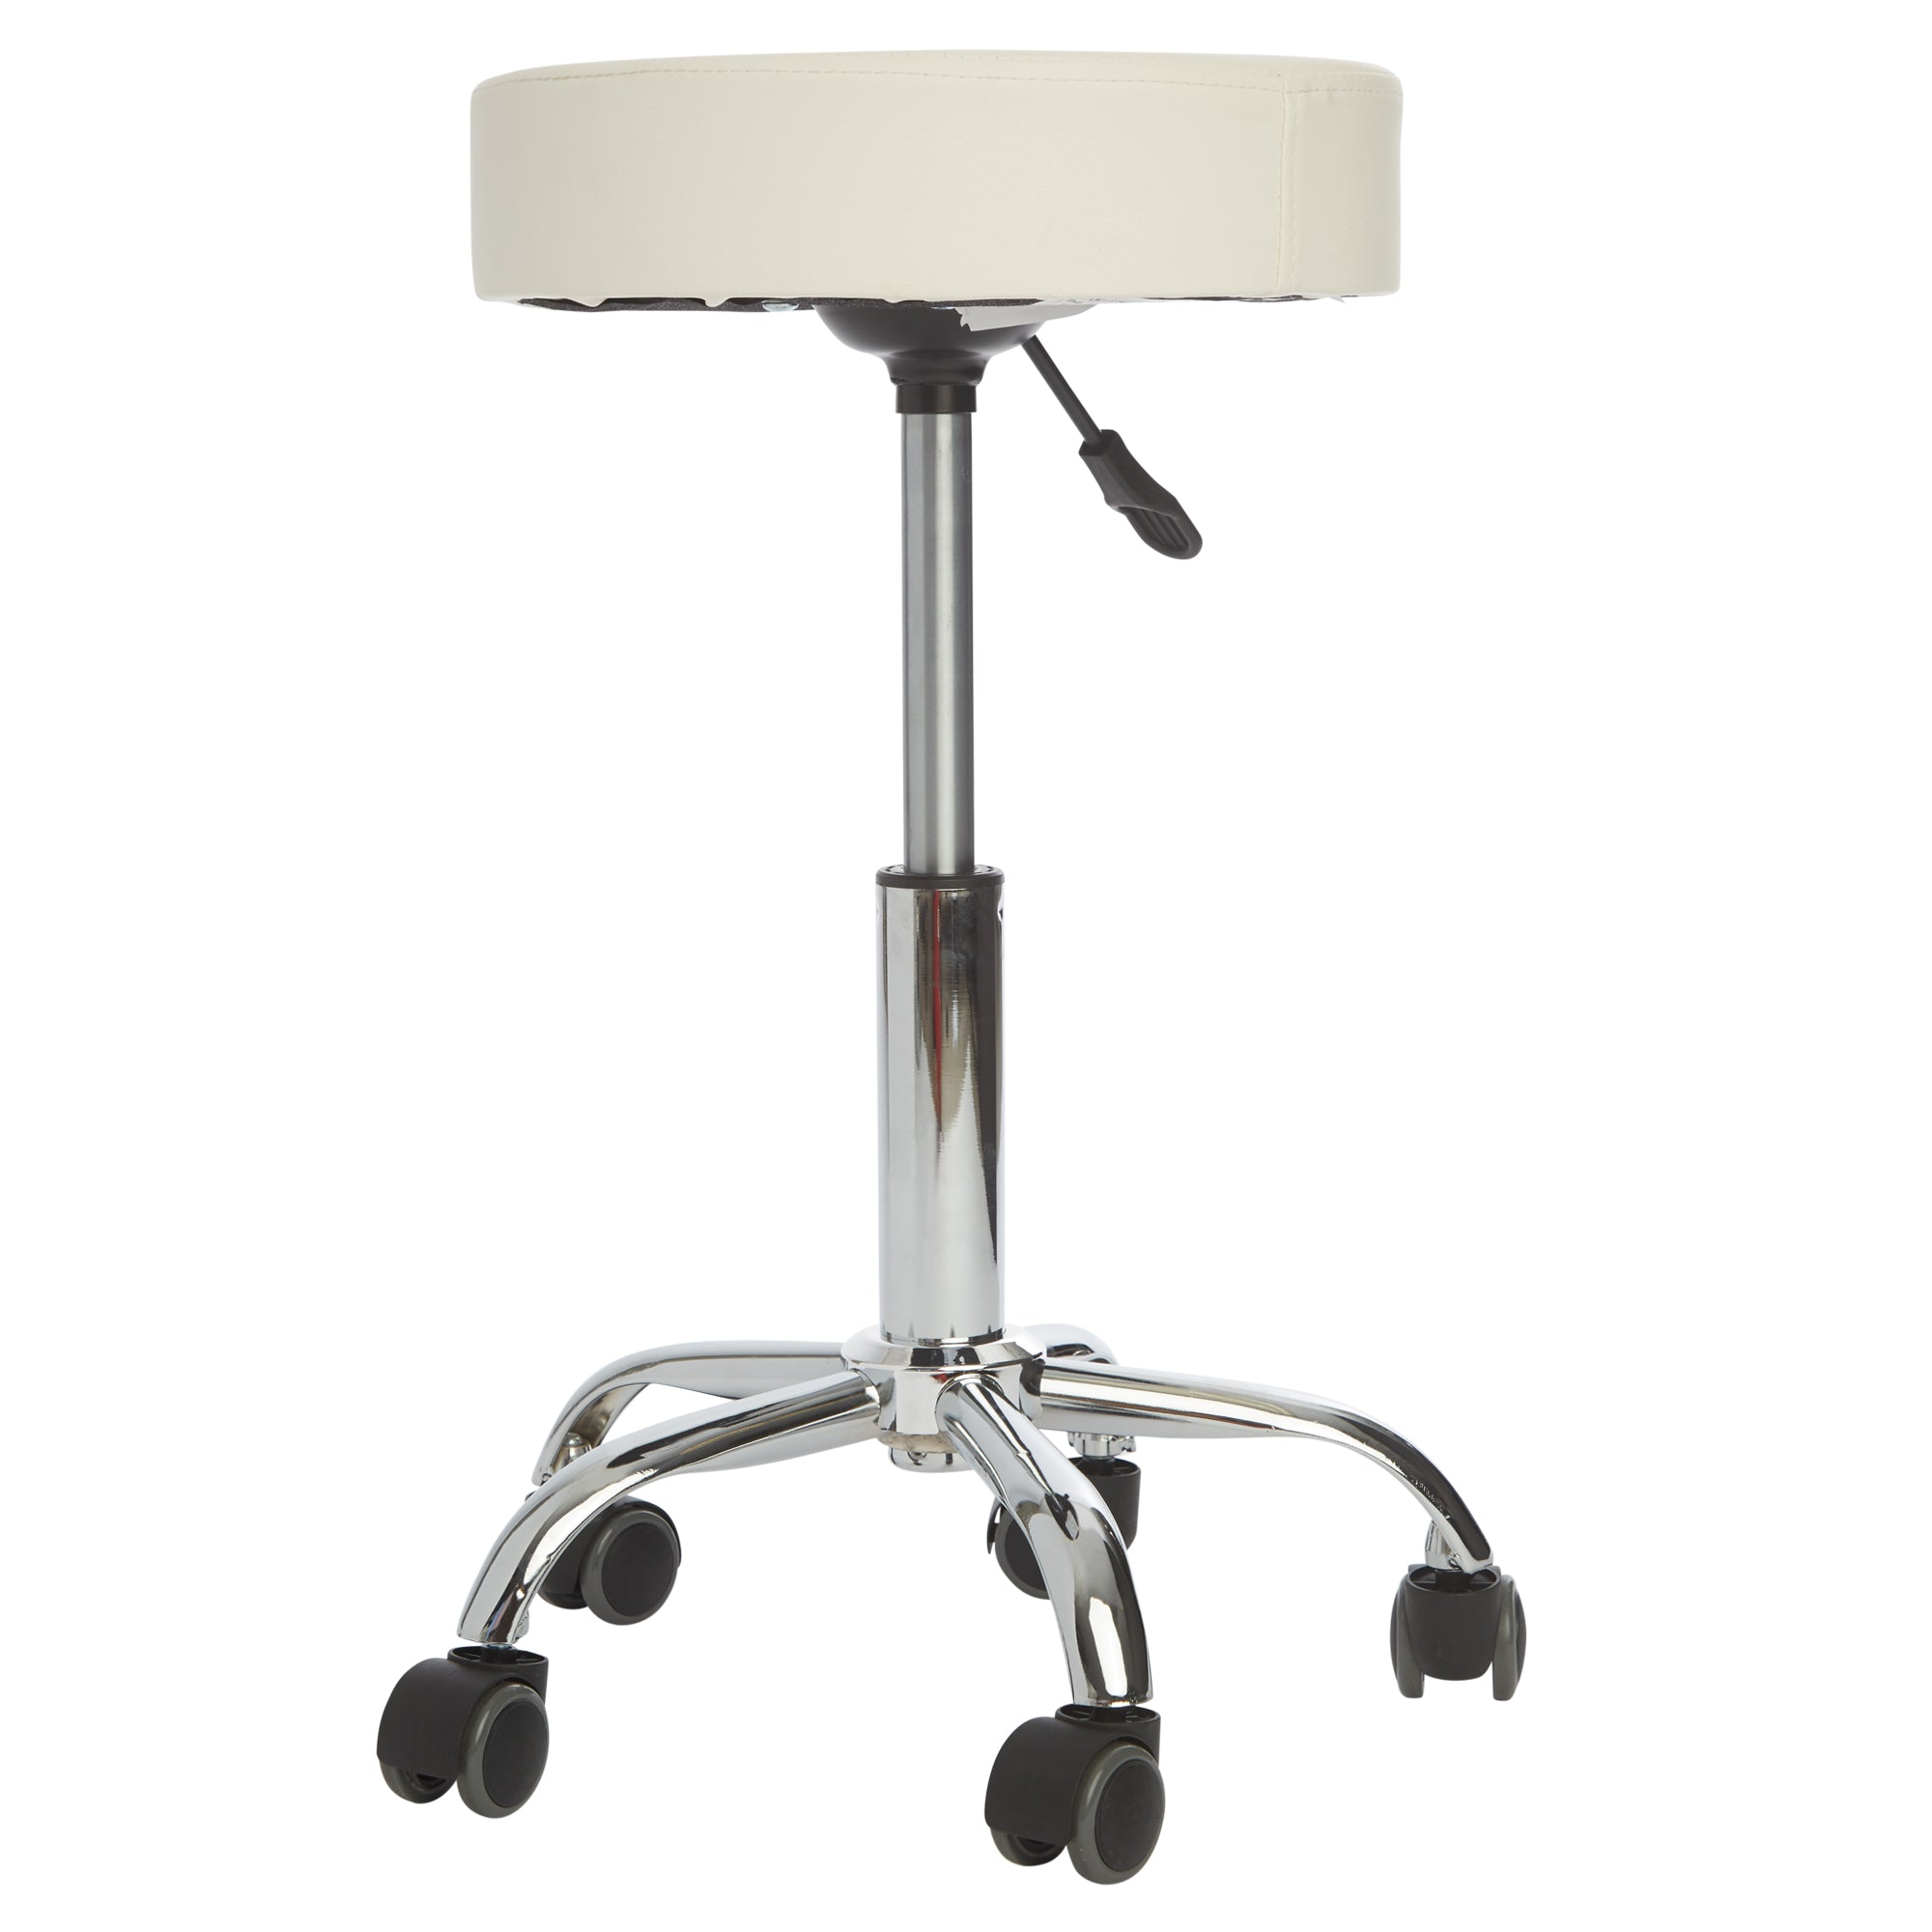 Prime Swivel Vanity Stool With Adjustable Height Dailytribune Chair Design For Home Dailytribuneorg